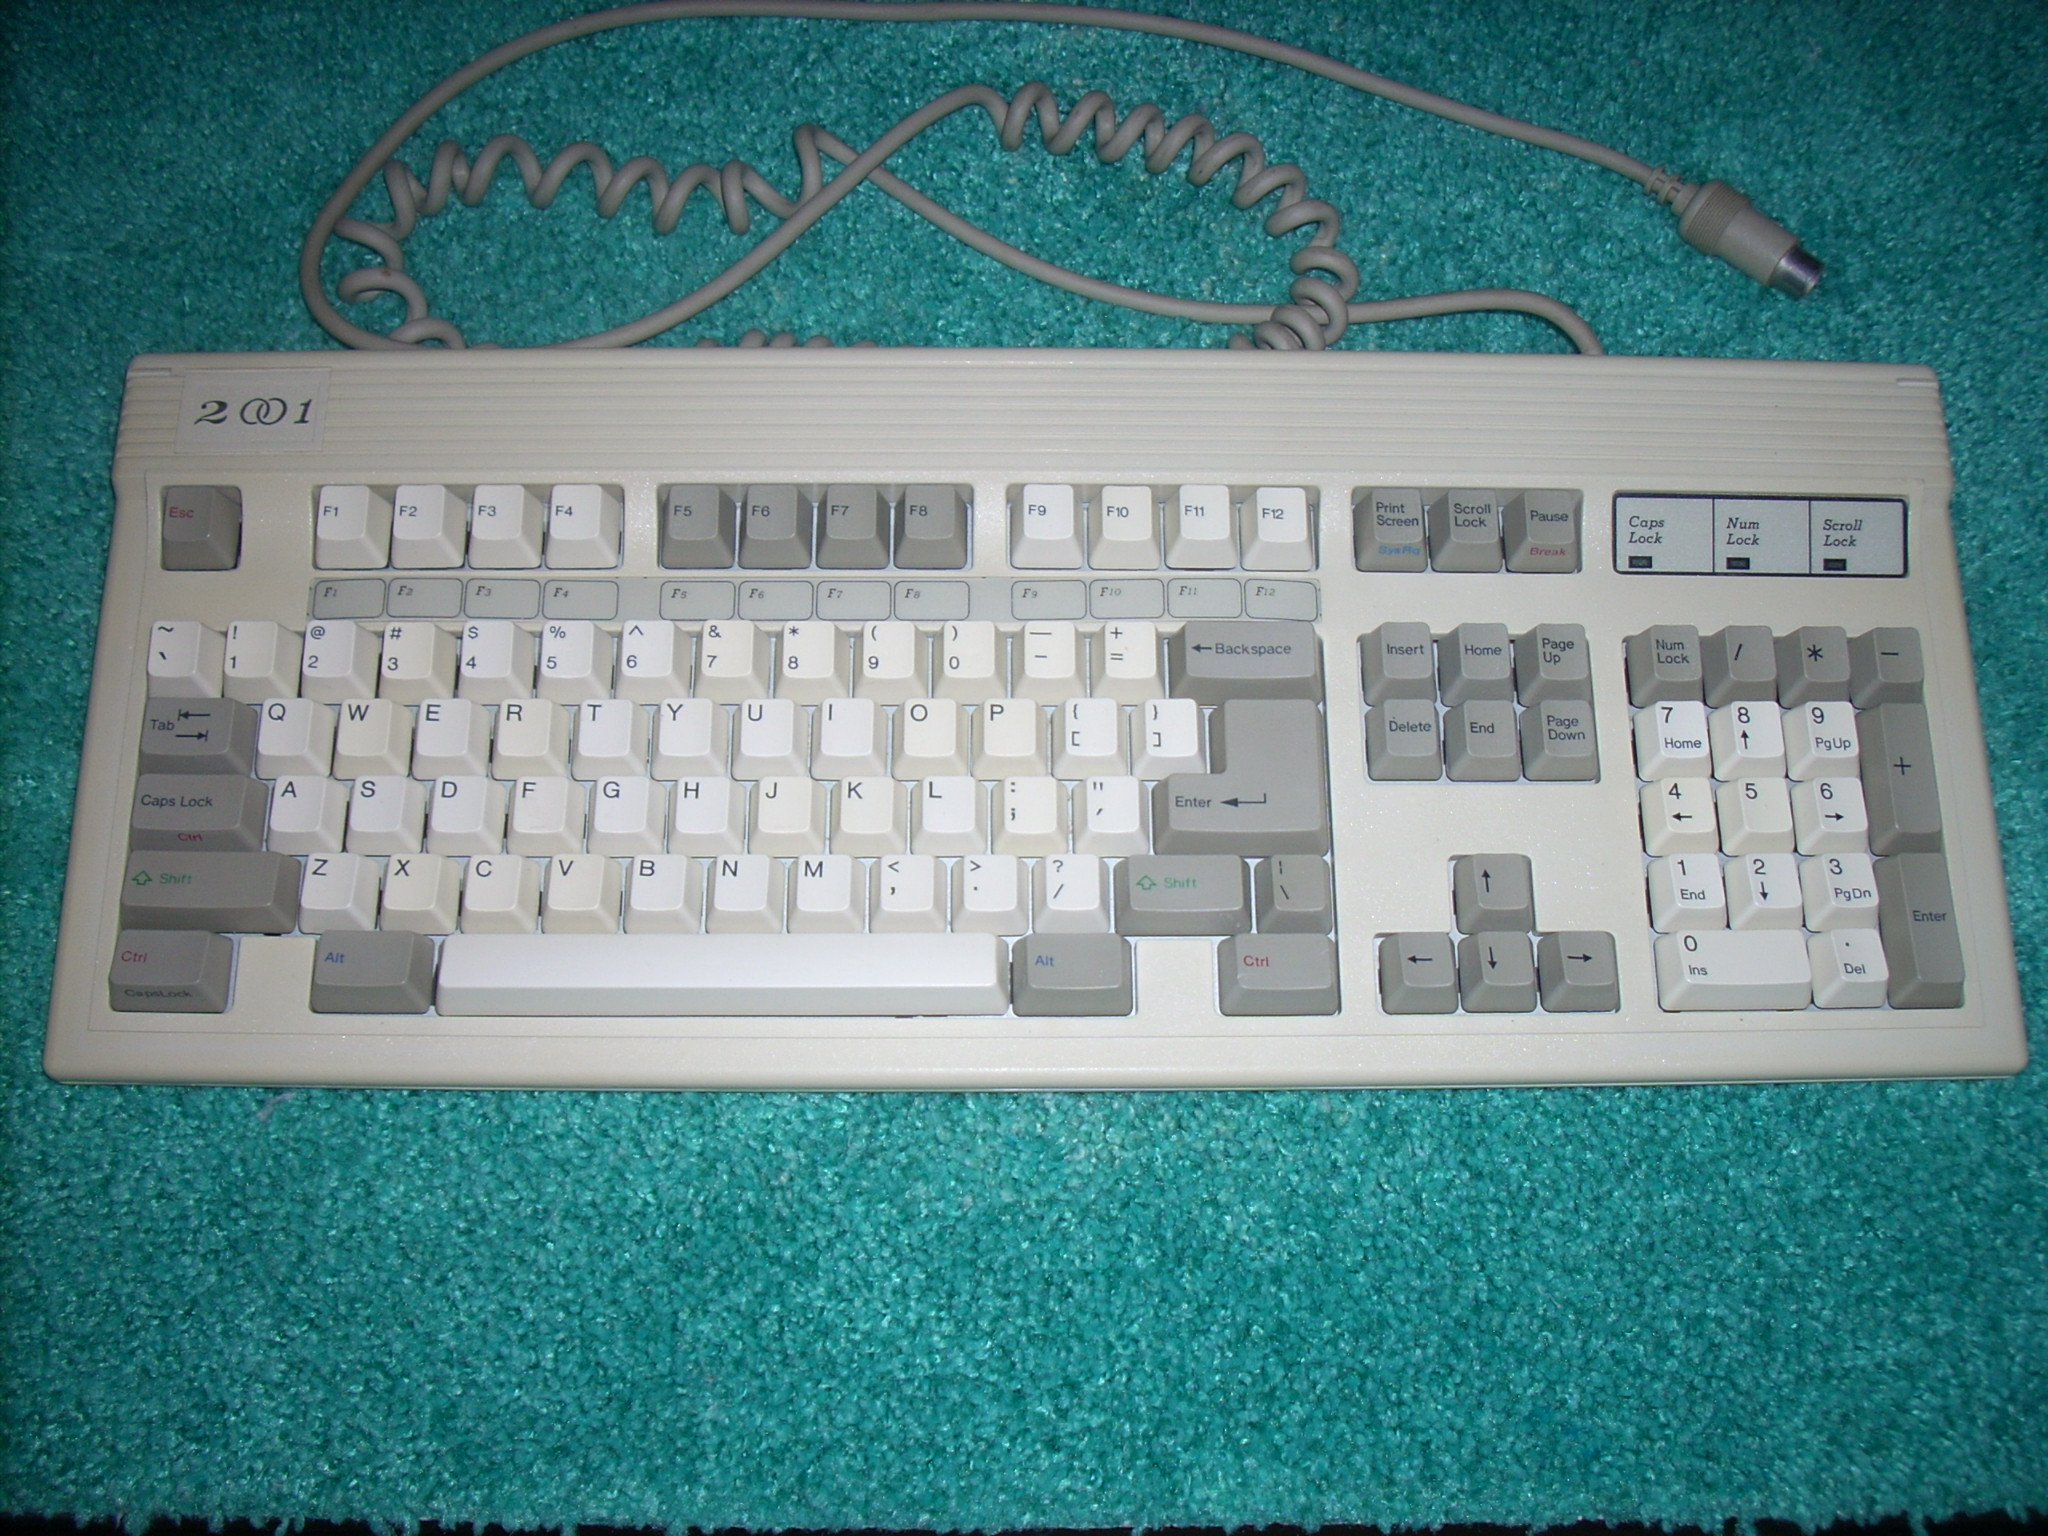 yellowed FK-2001